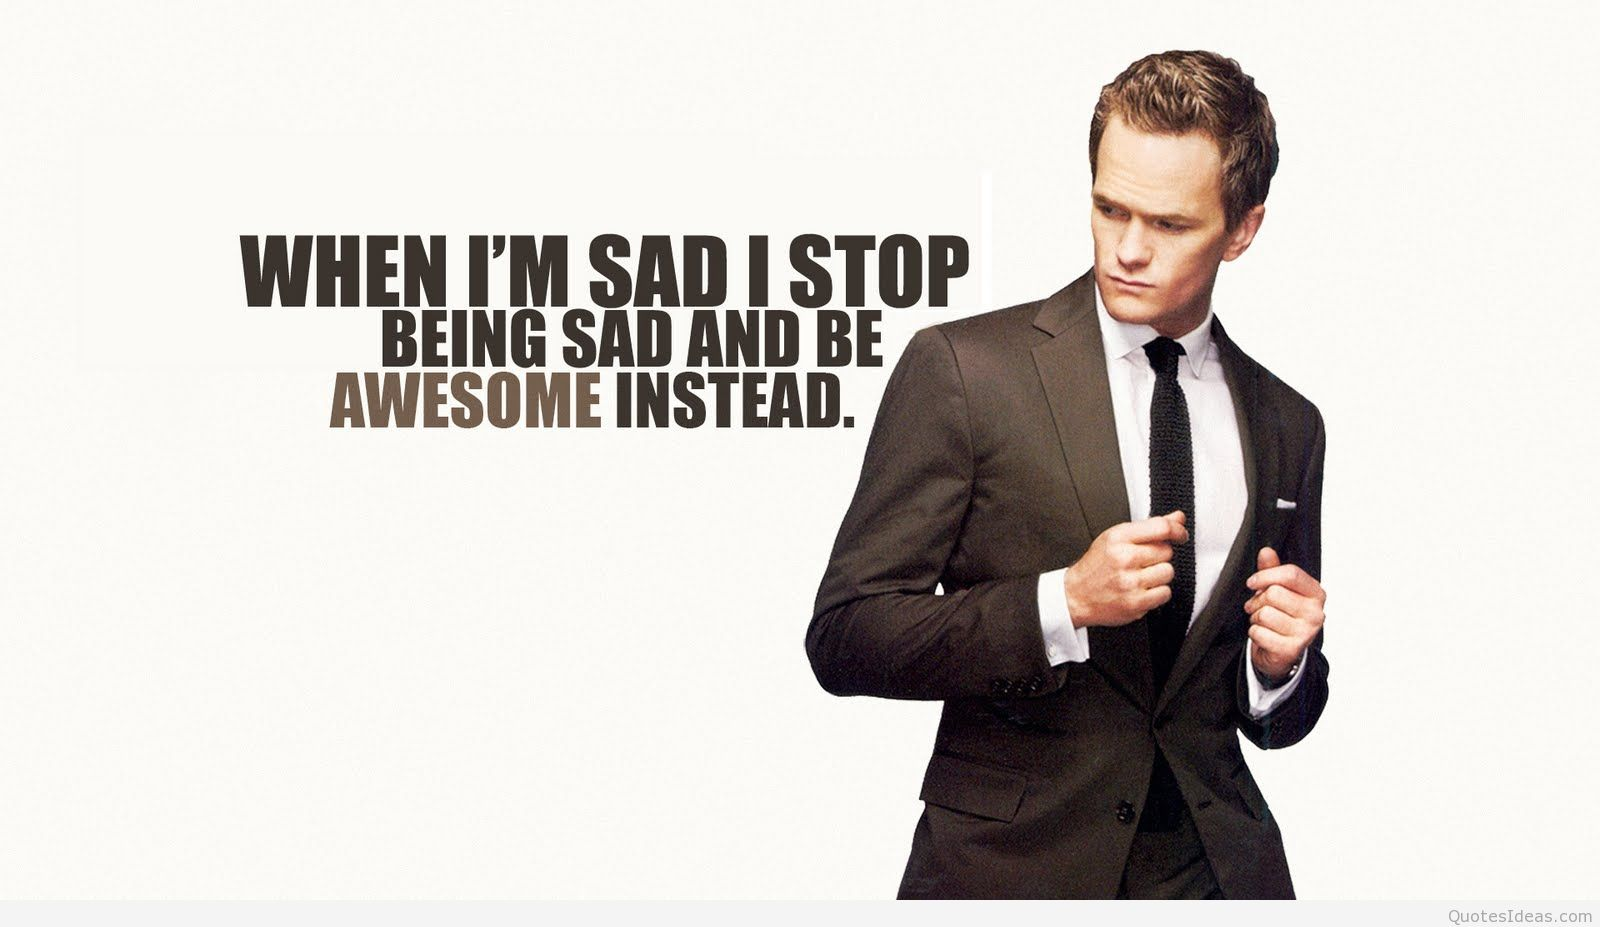 [Image] In the words of the great barney stinson